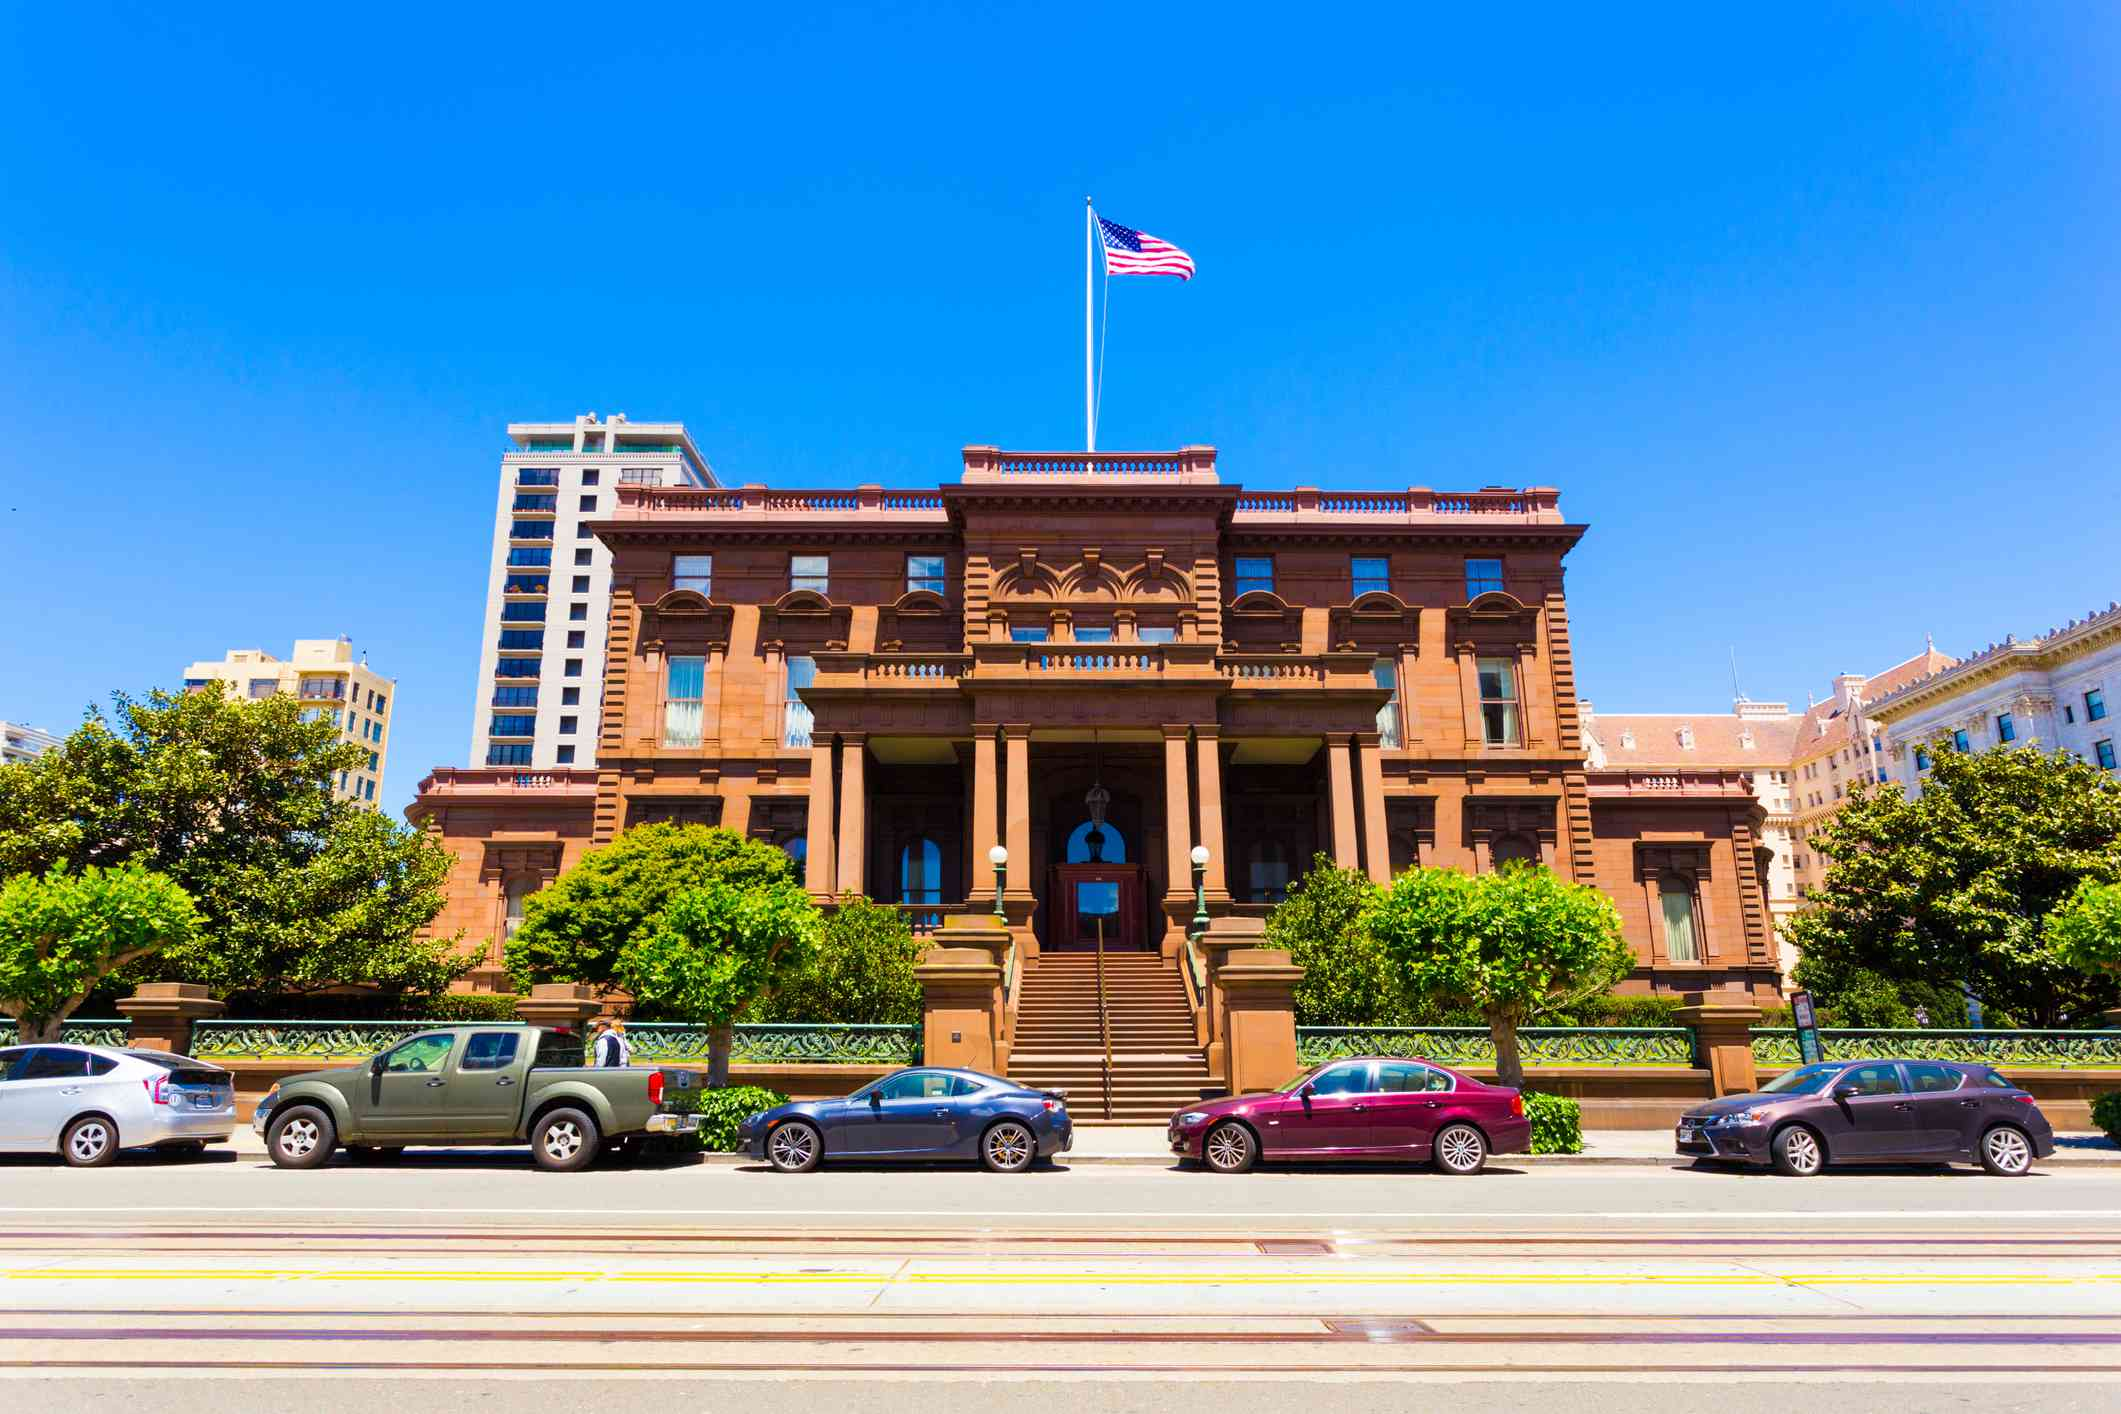 Historic brownstone house, the former Flood Mansion is home to Pacific-Union Club on California Street on Nob Hill in sunny San Franciscp